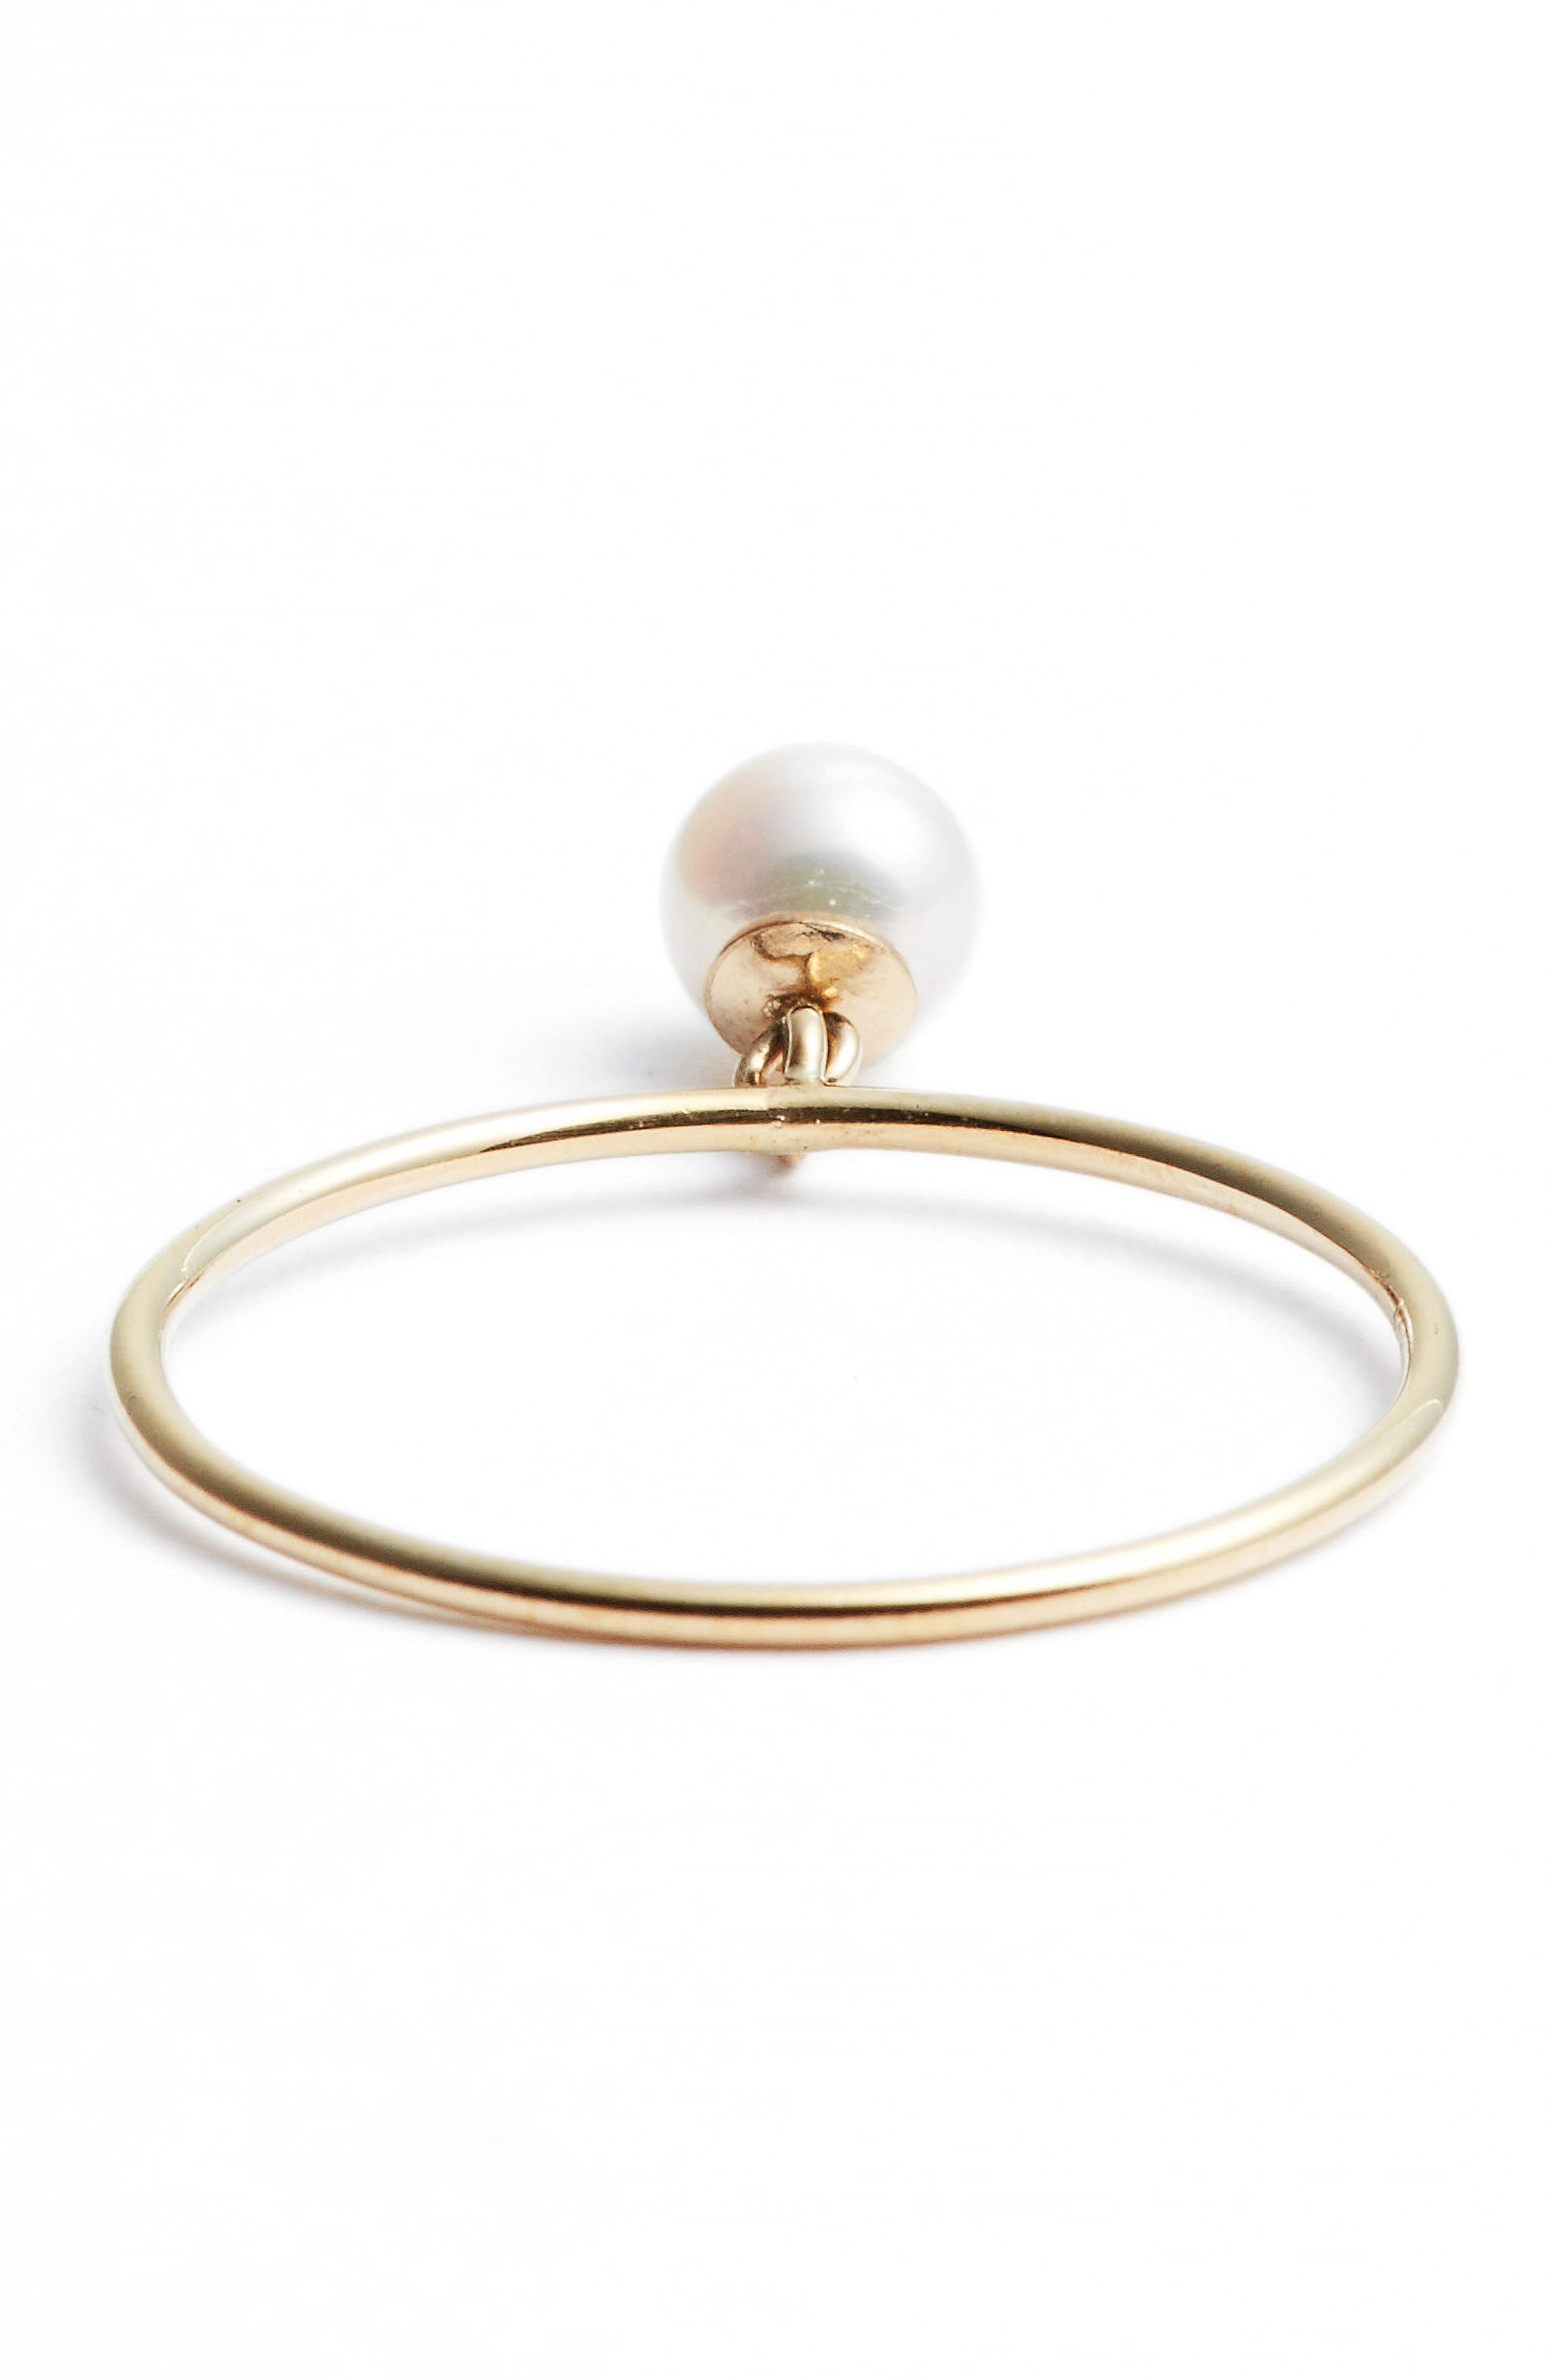 Dangling Pearl Charm Ring,                             Alternate thumbnail 4, color,                             YELLOW GOLD/ WHITE PEARL